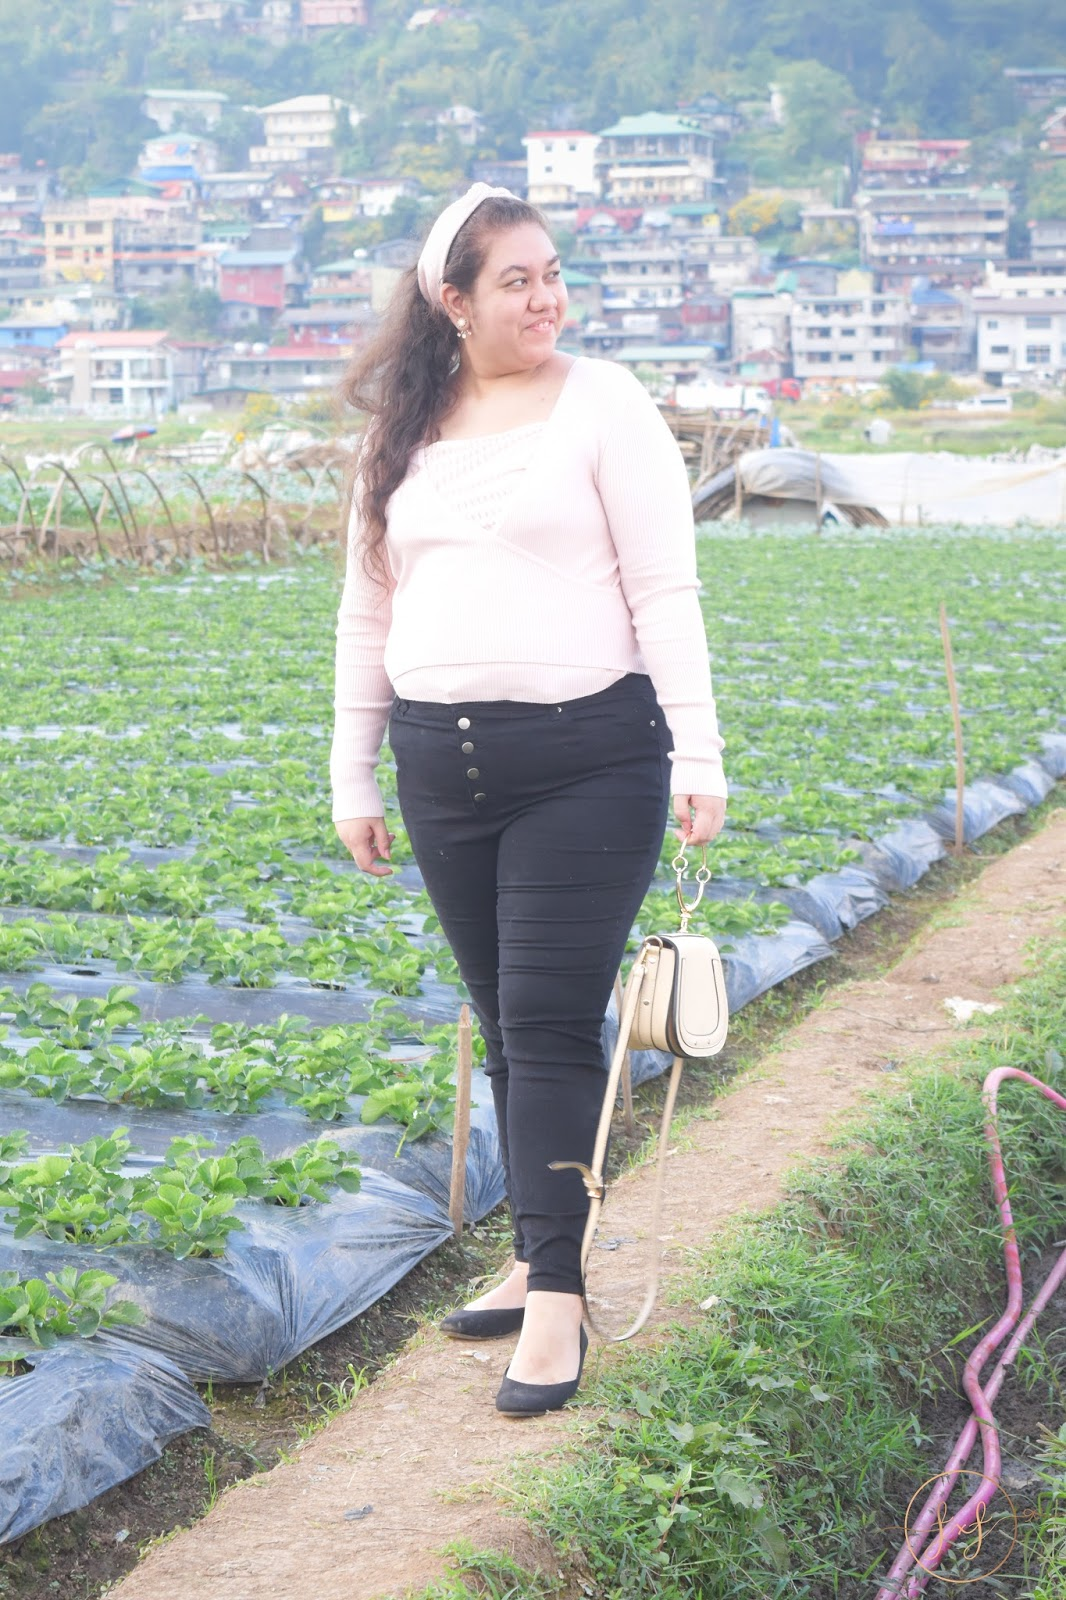 Strawberry Farm | What I Wore